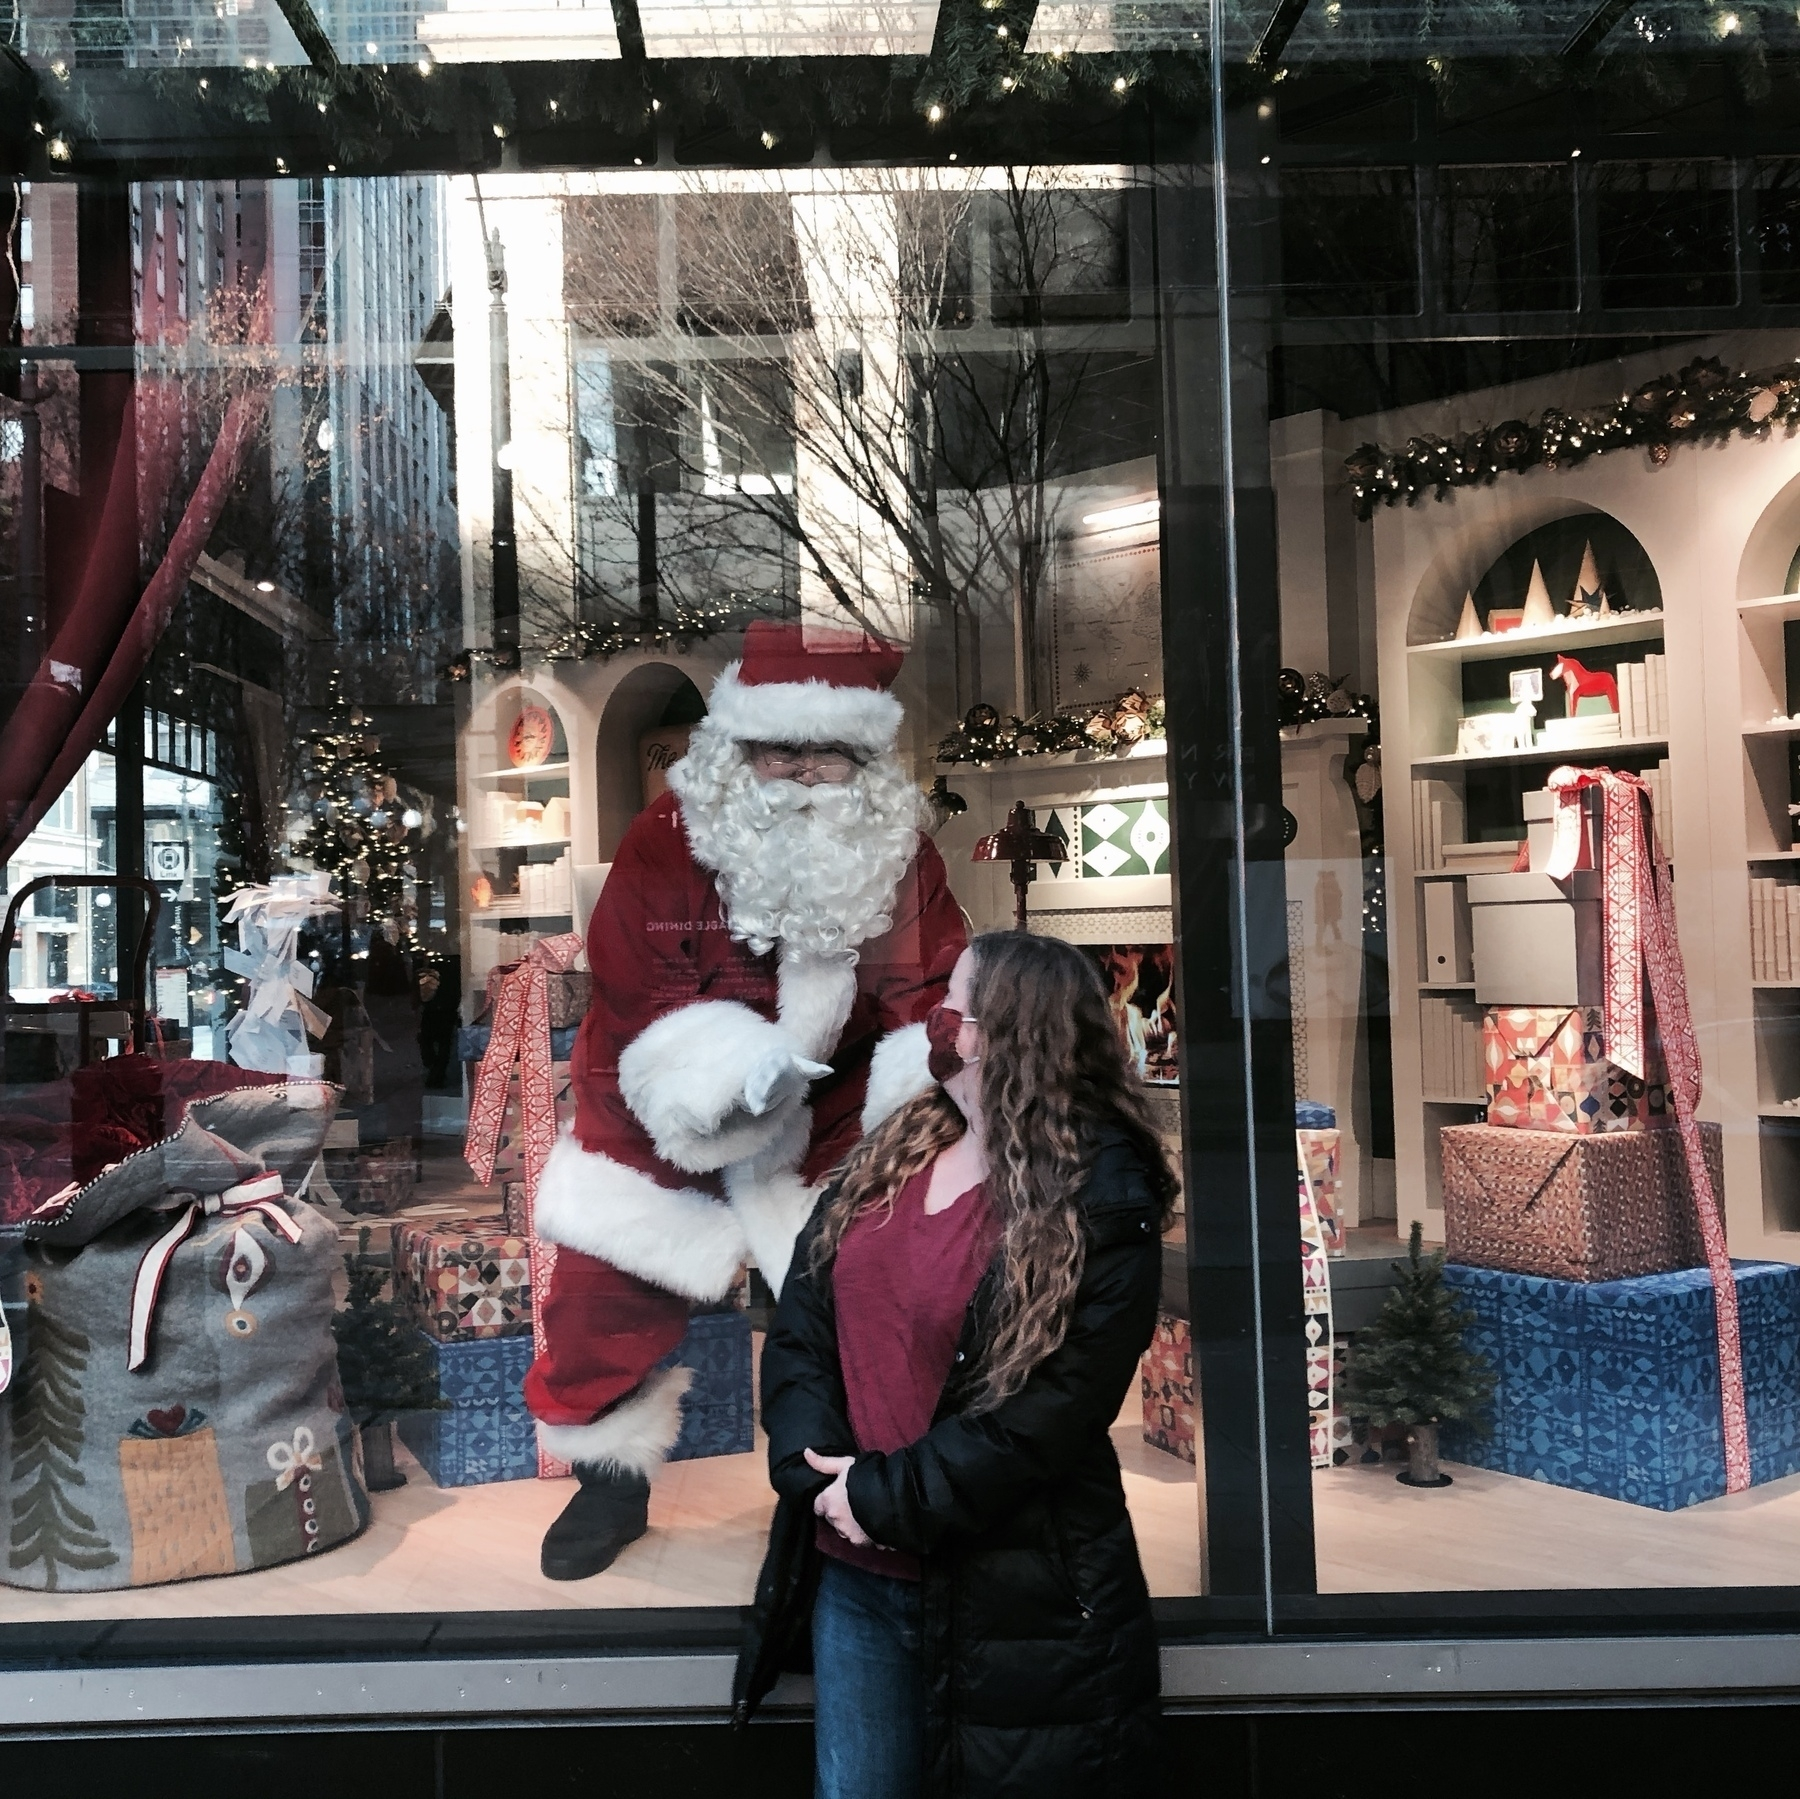 Cheri turns back to look at Santa. He's behind the glass inside a display area at Nordstrom department store